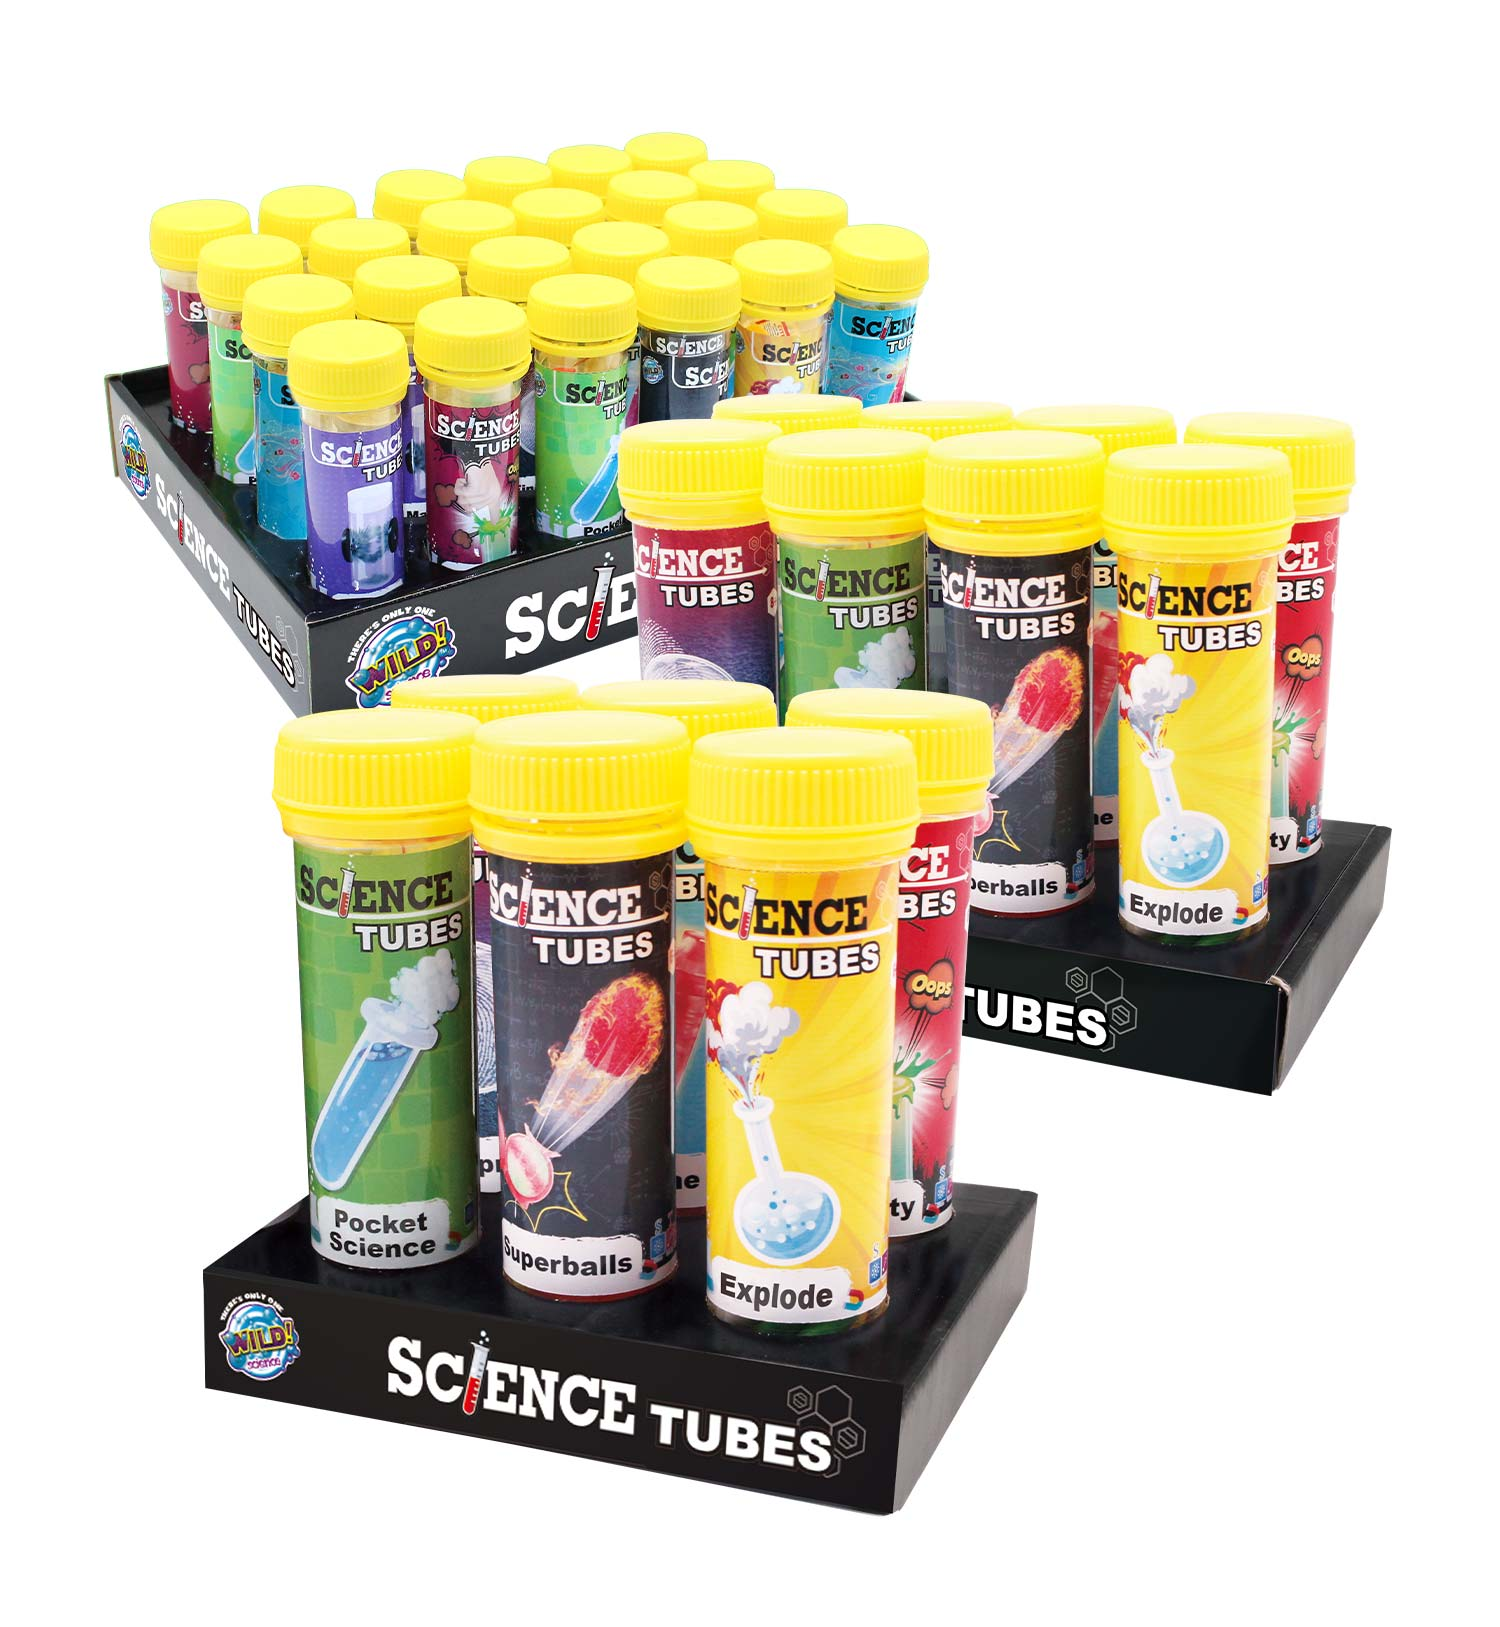 Science Tube Sets